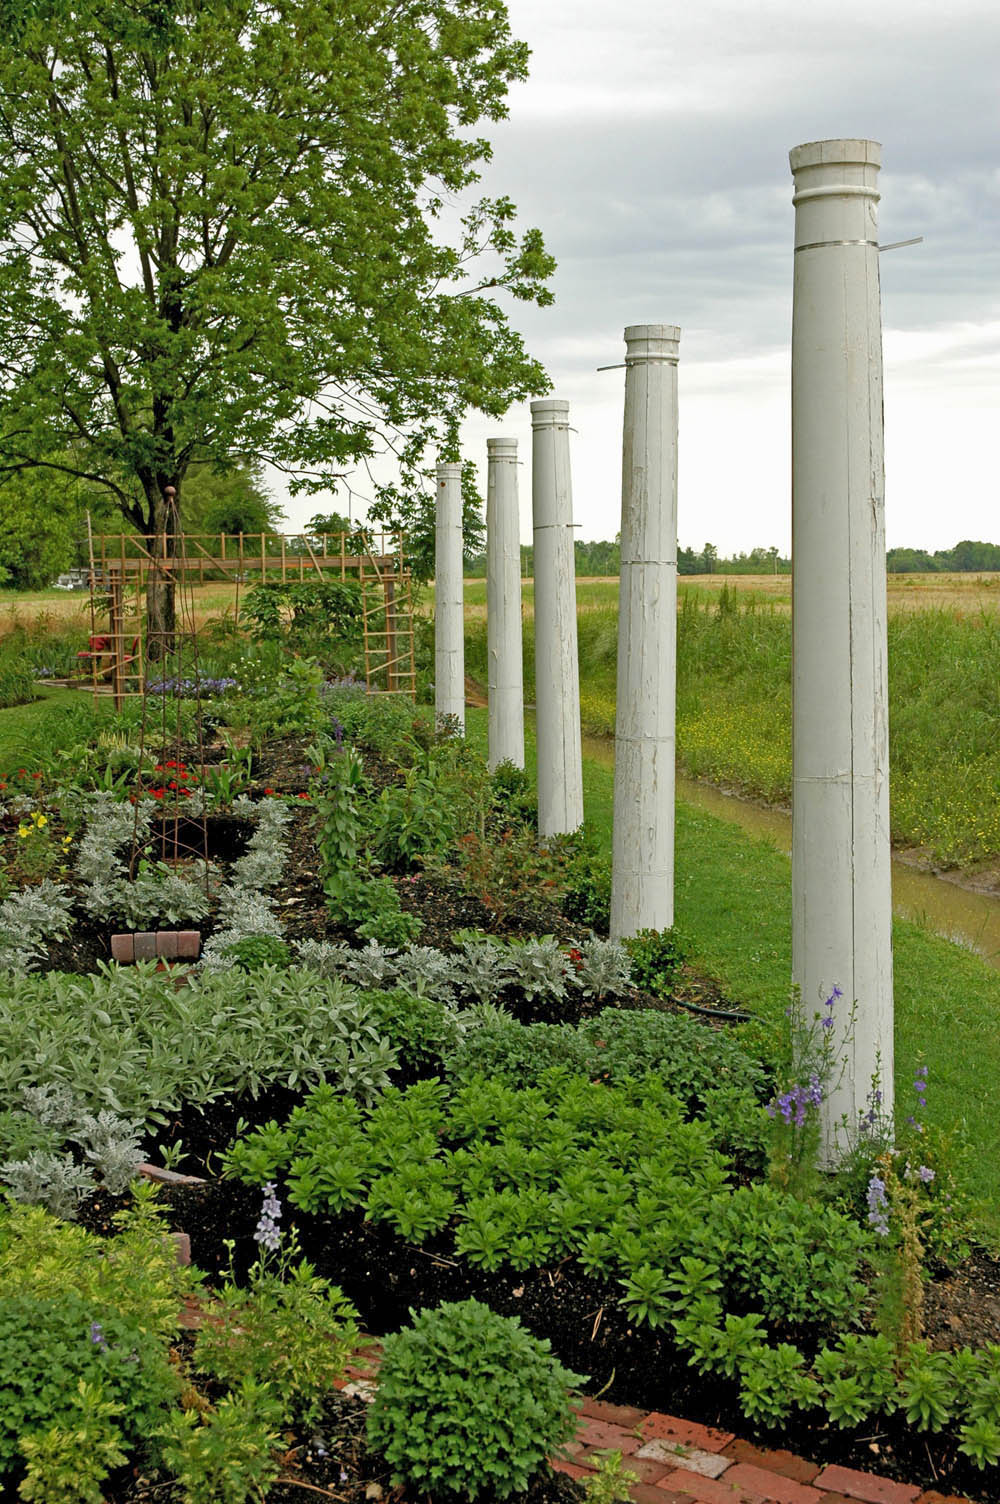 Recycled items impress visitors to a home garden Mississippi